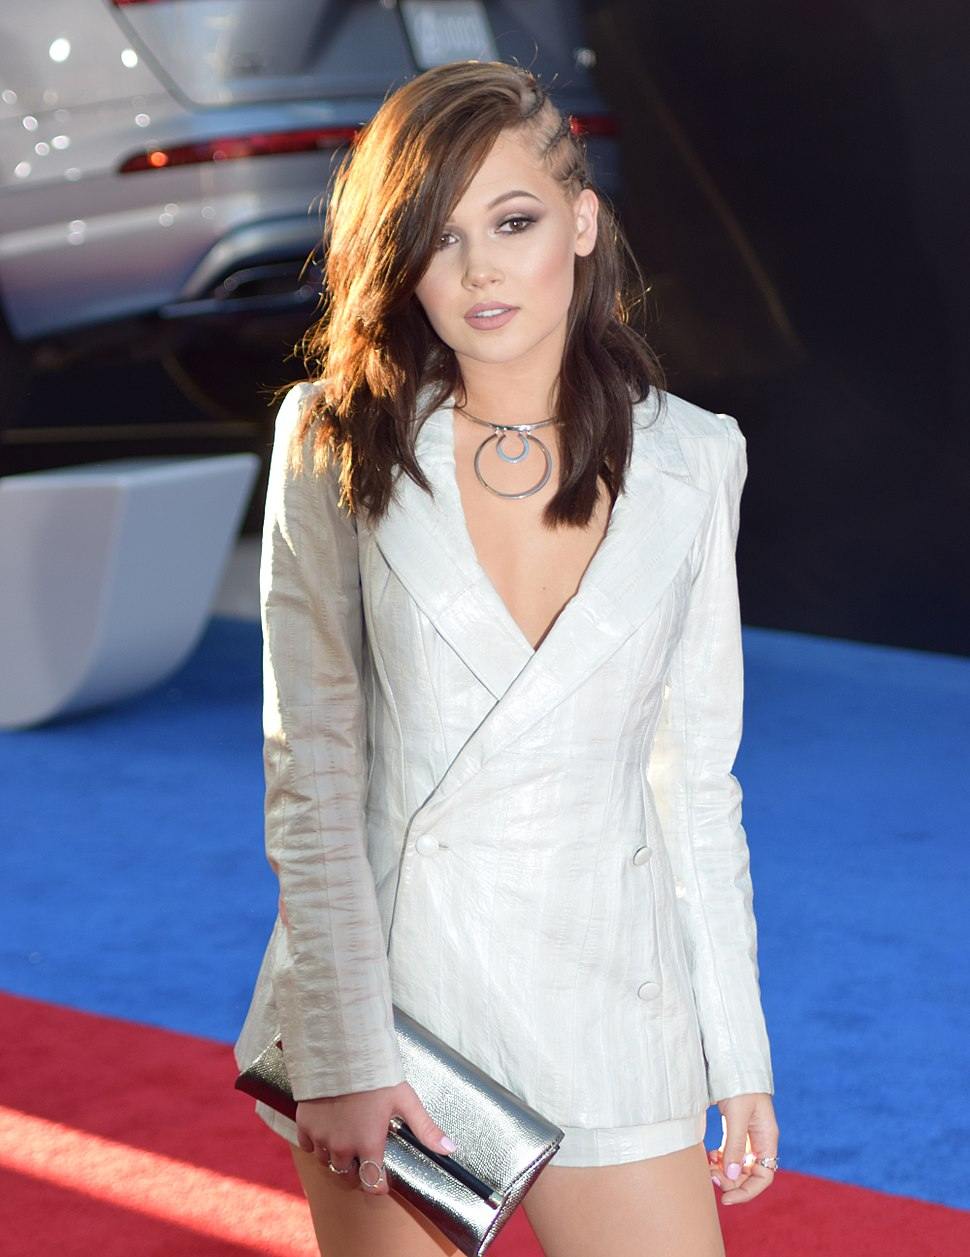 Kelli Berglund at Captain America Civil War premiere